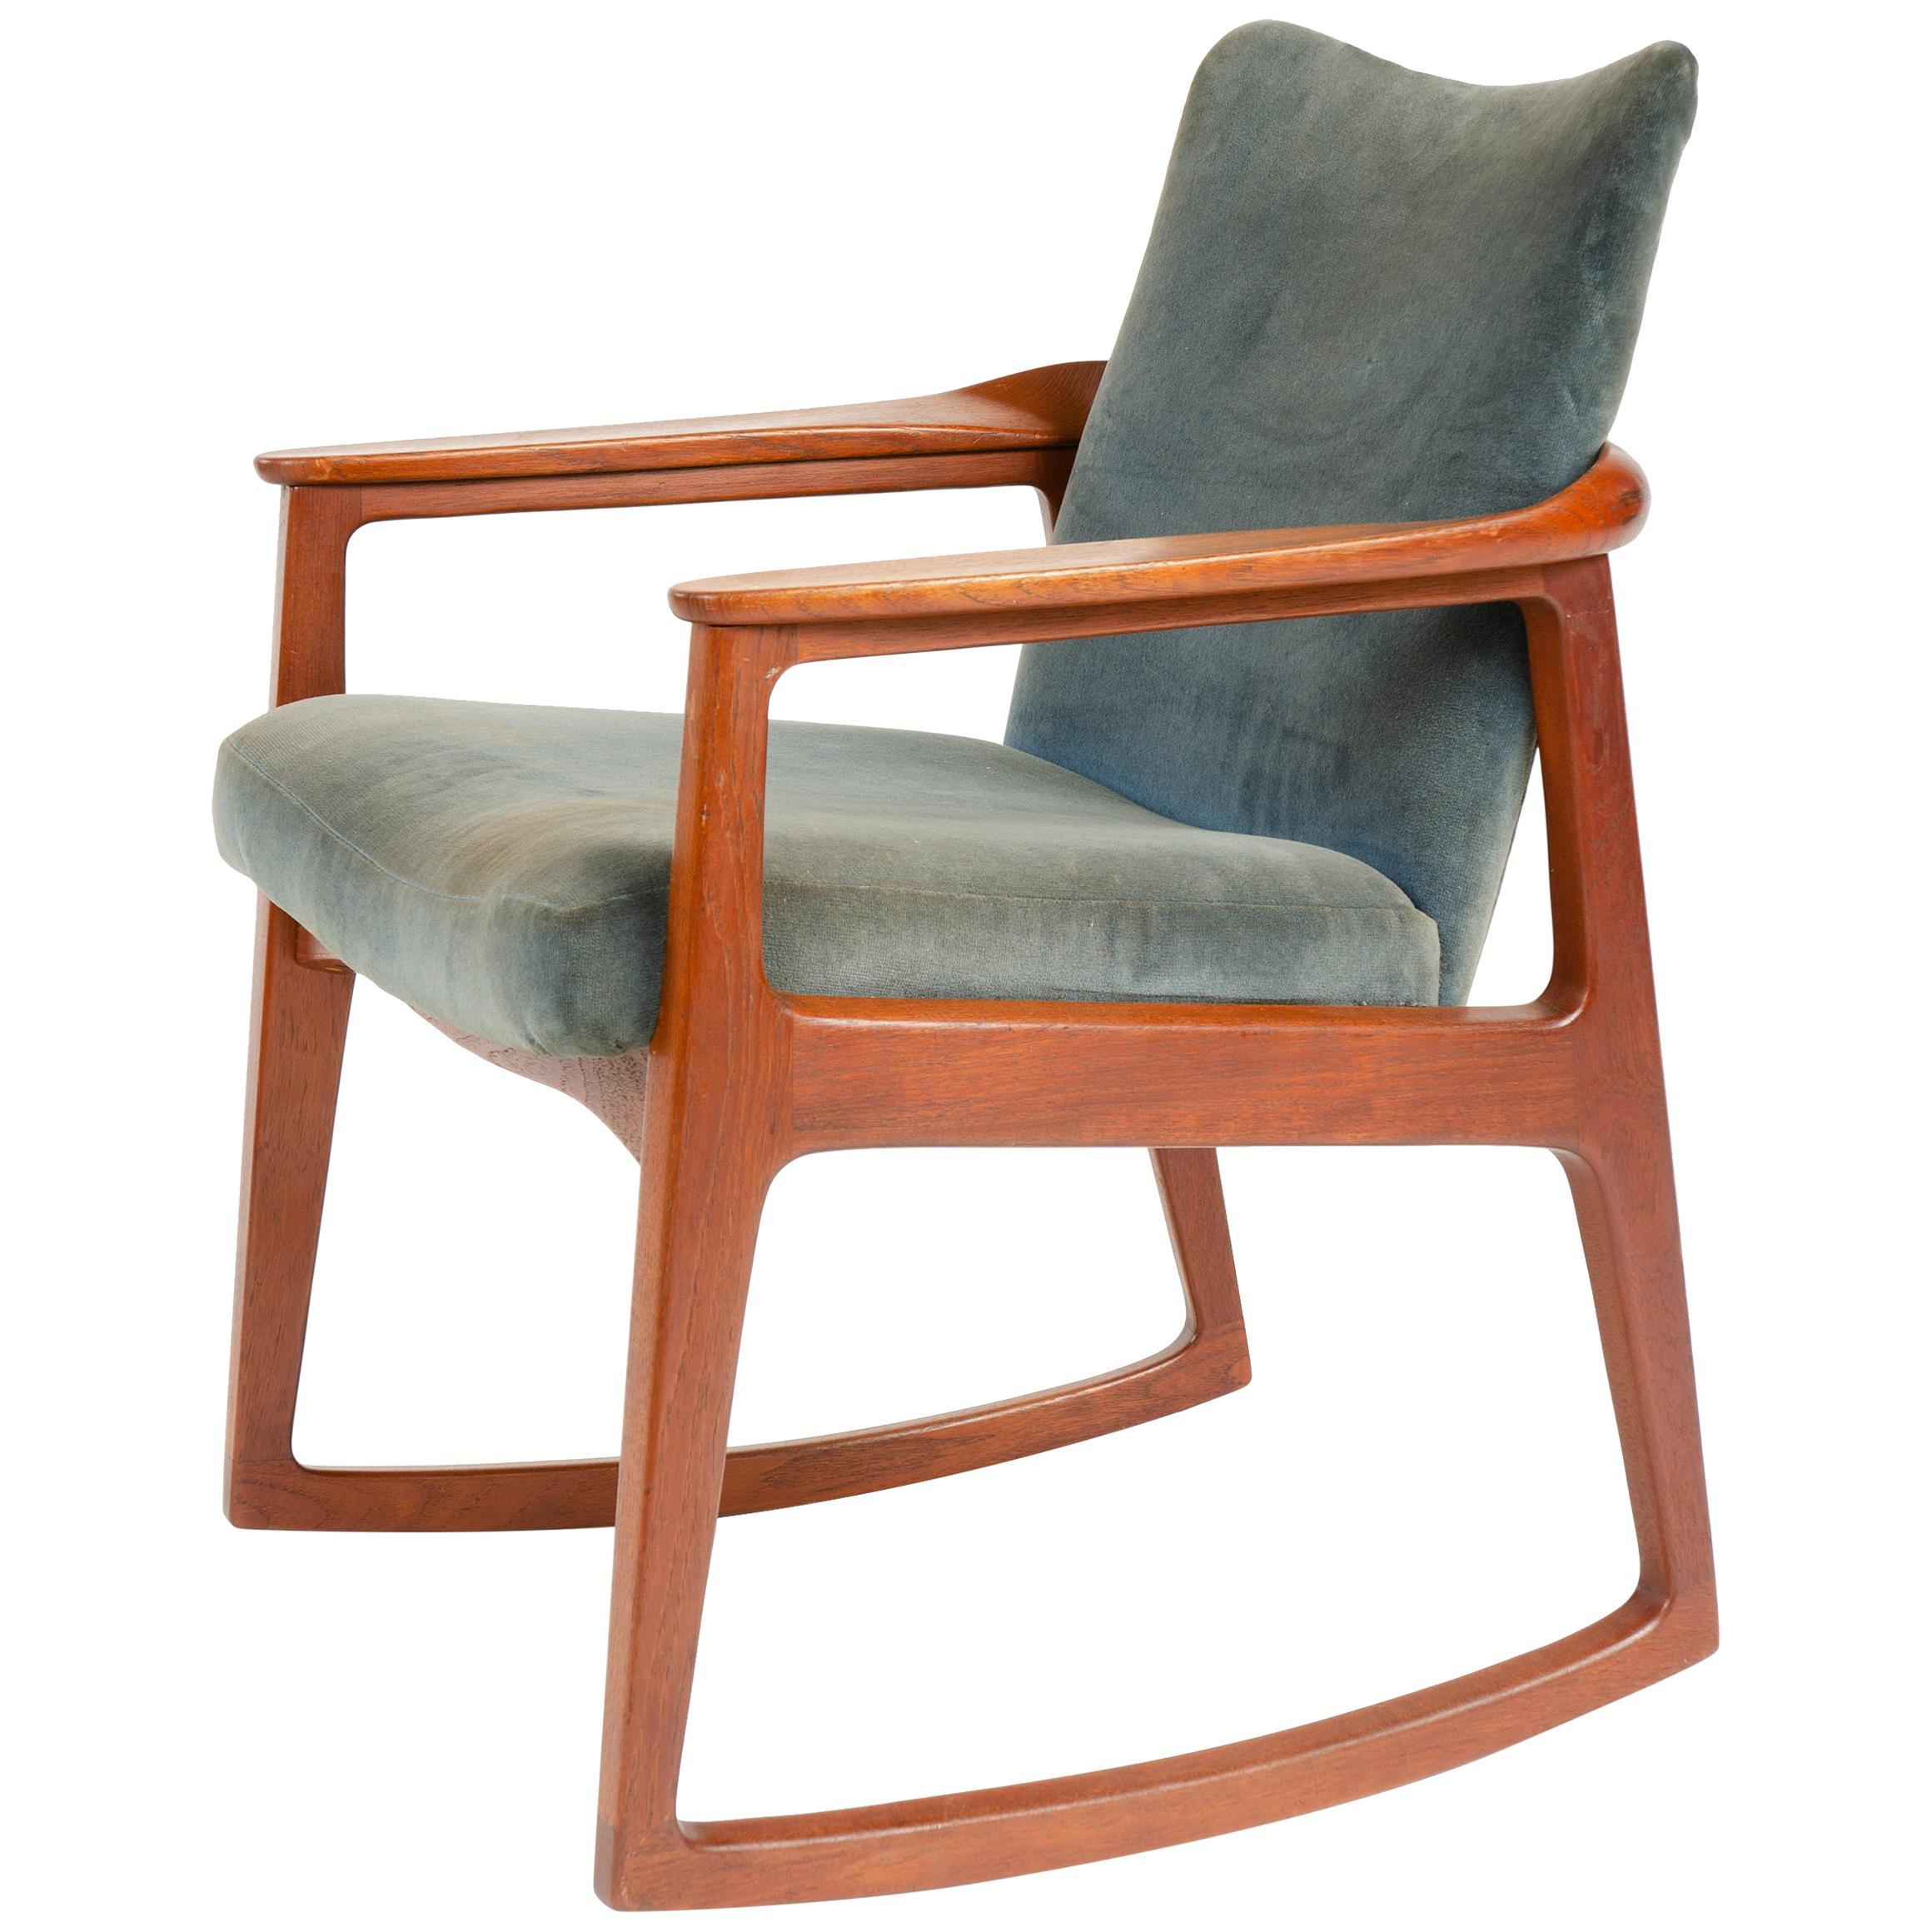 1960s Danish Upholstered Rocking Chair by Sigvard Bernadotte for France & Son